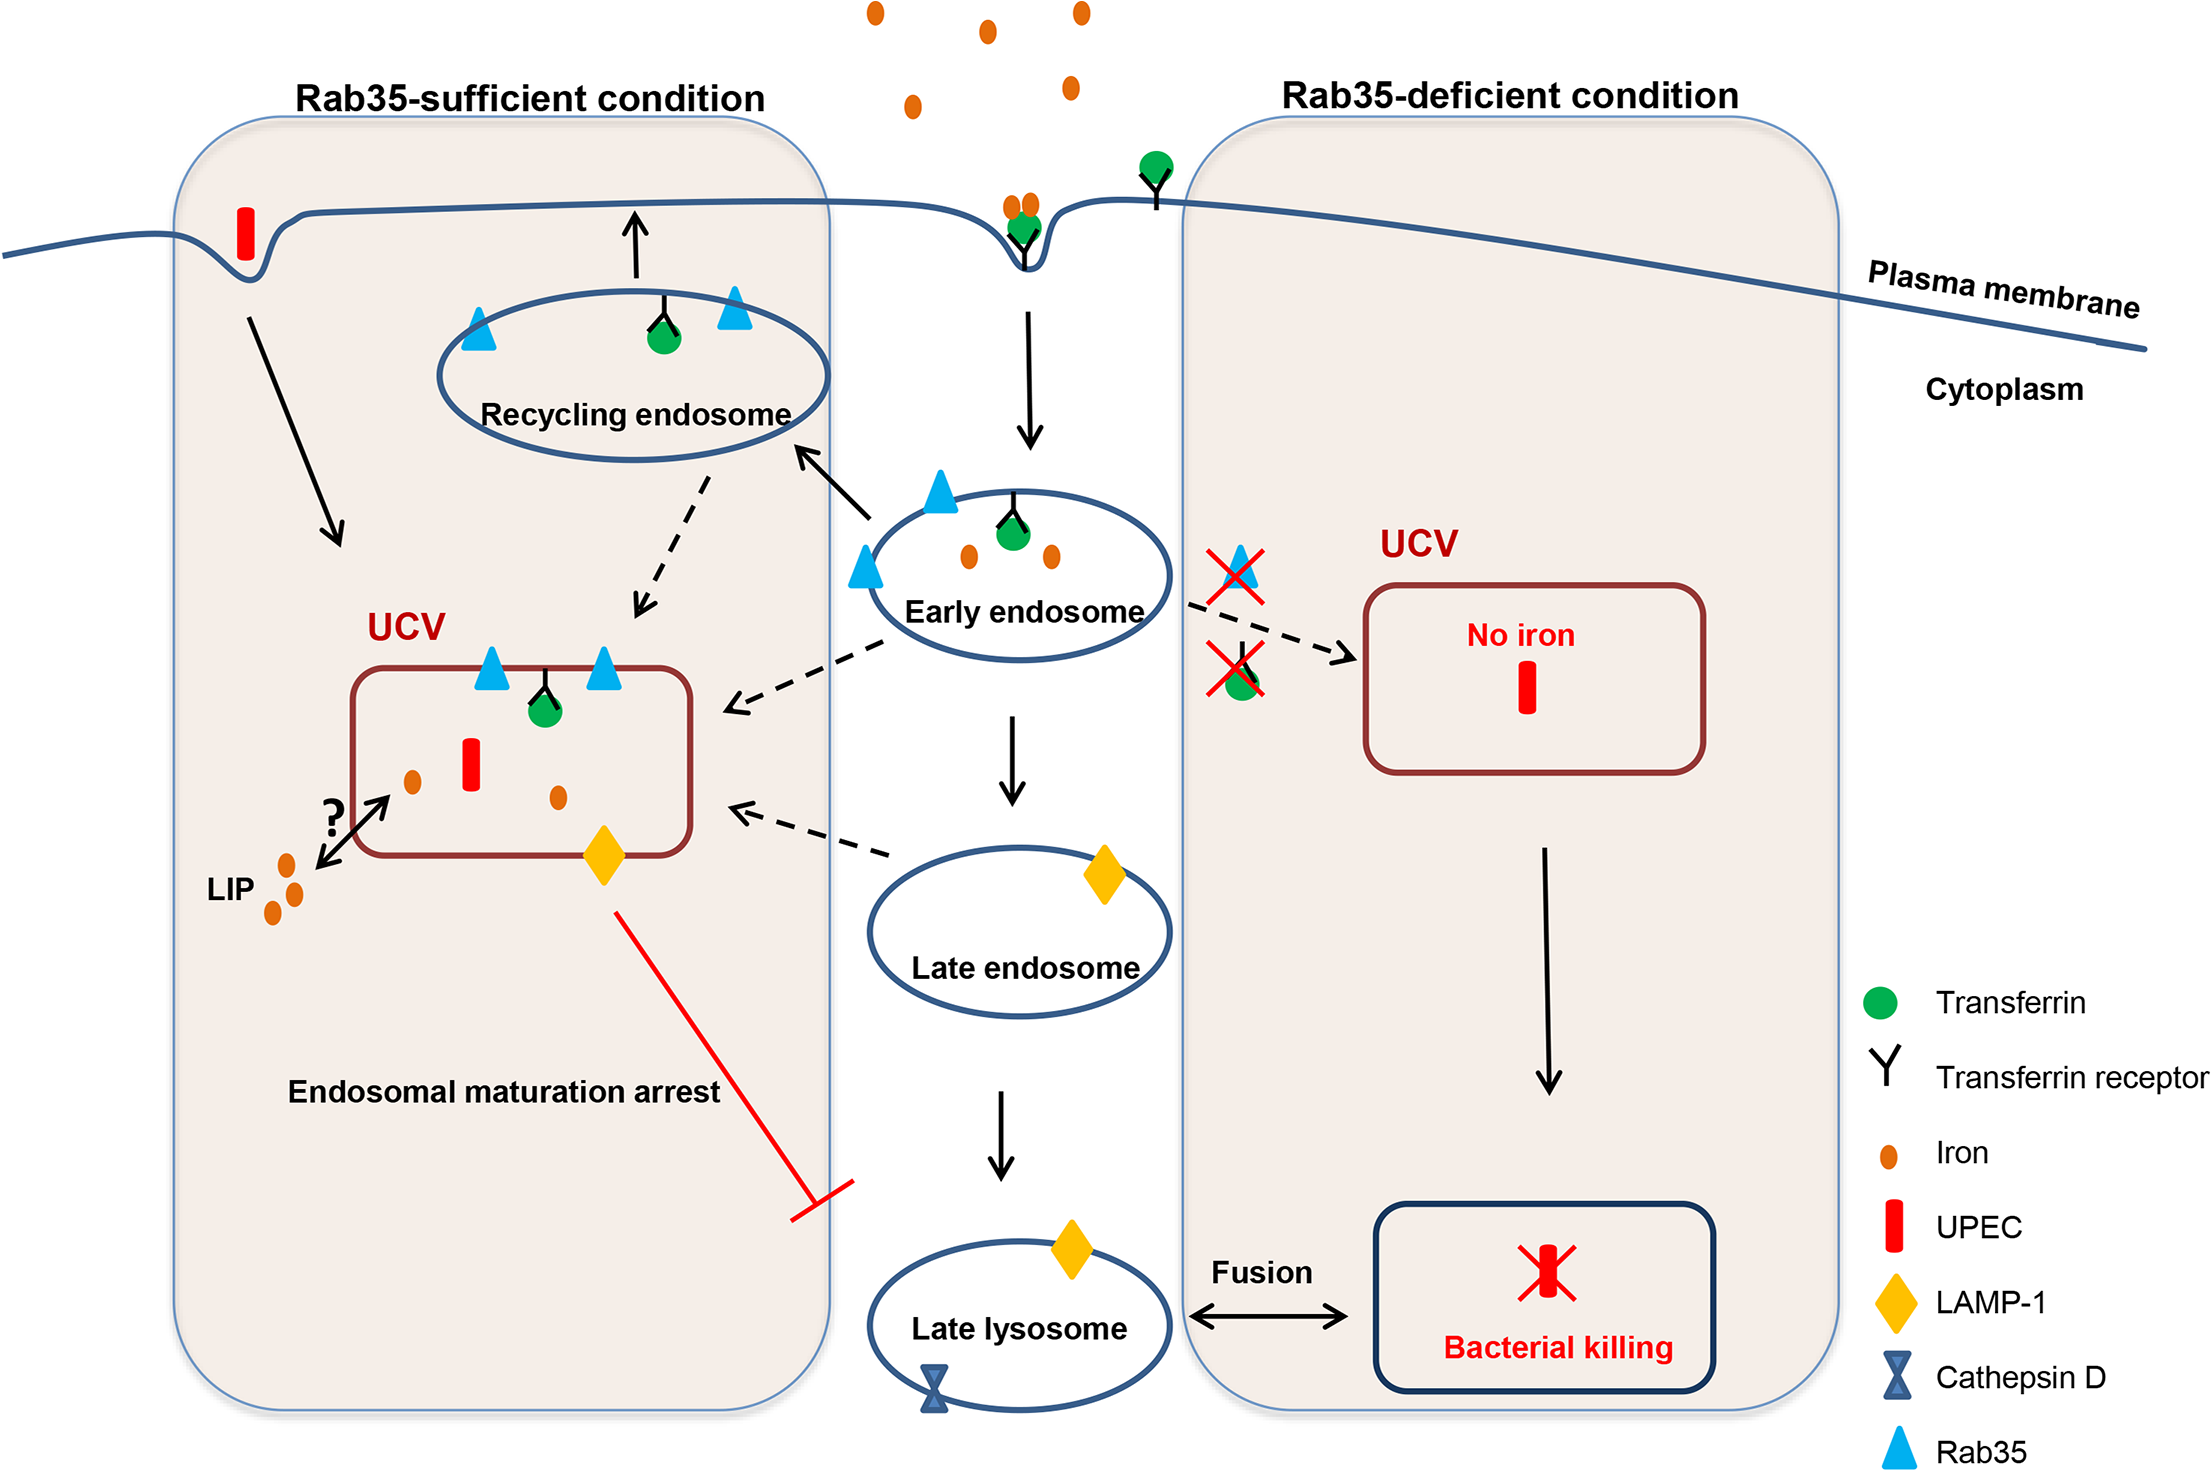 Schematic representation of how the presence or absence of Rab35 affects the fate of UPEC survival within UCV.